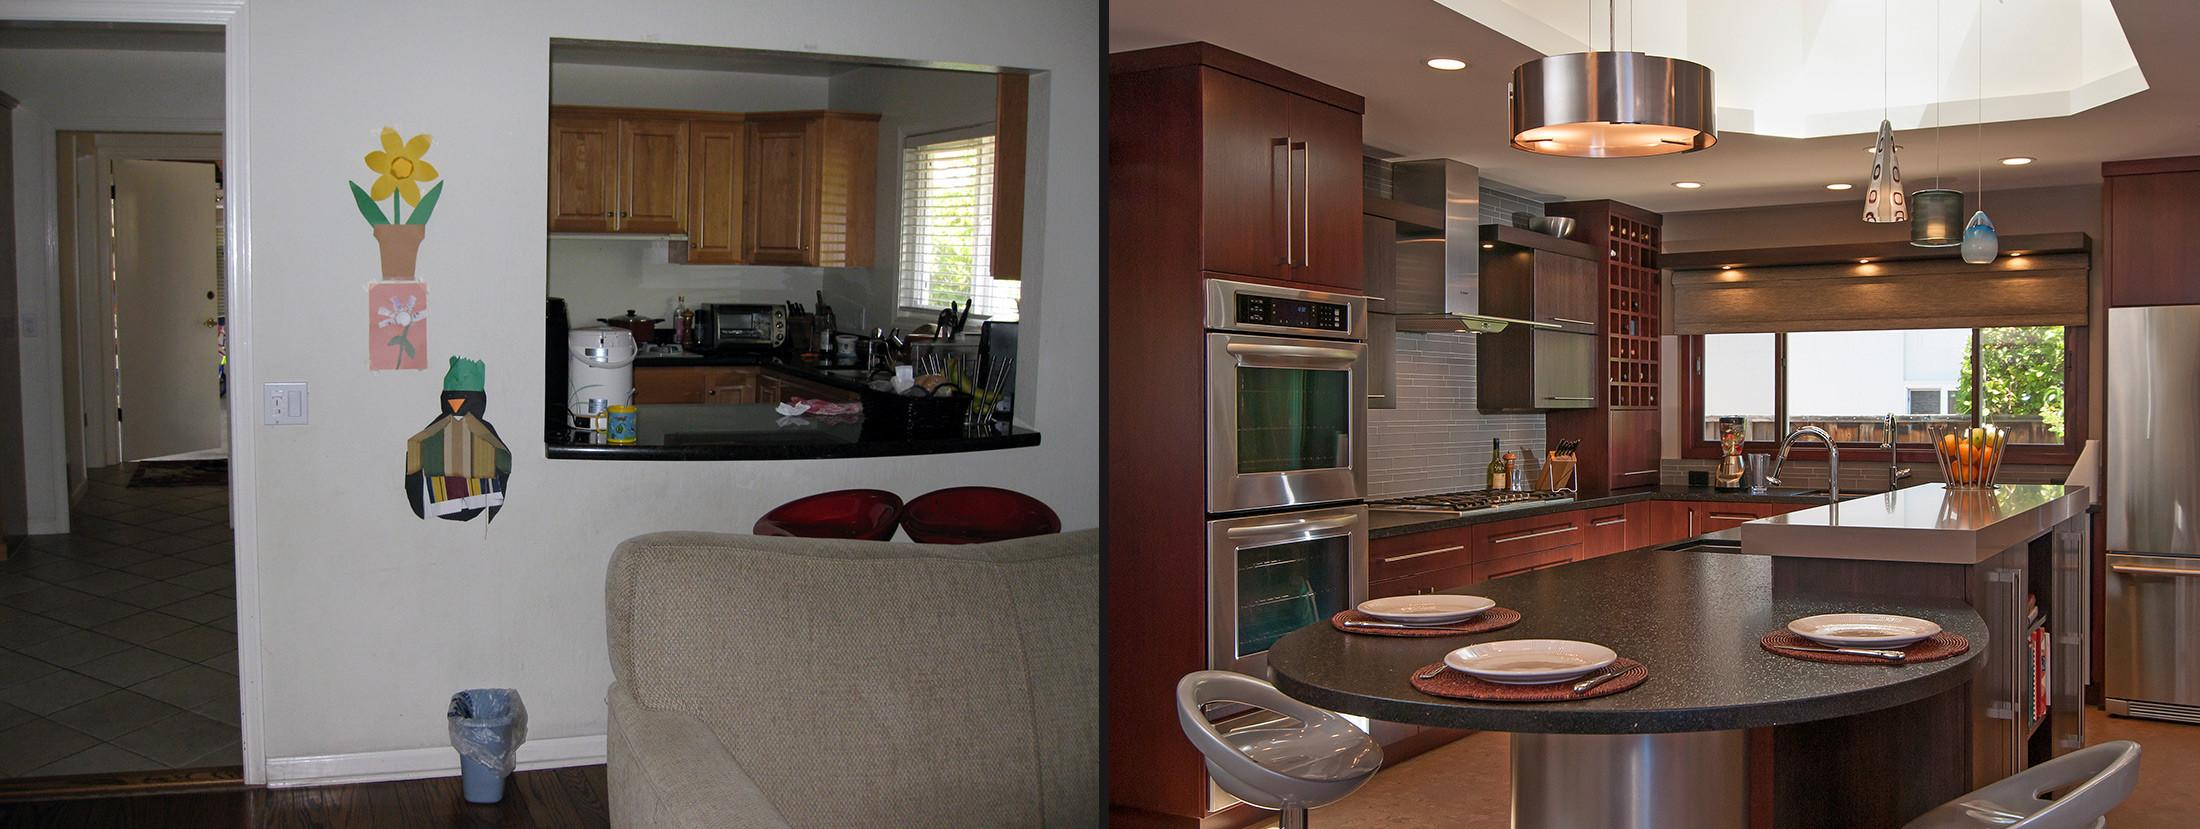 Remodelwest Before After Remodeling Galleries Saratoga